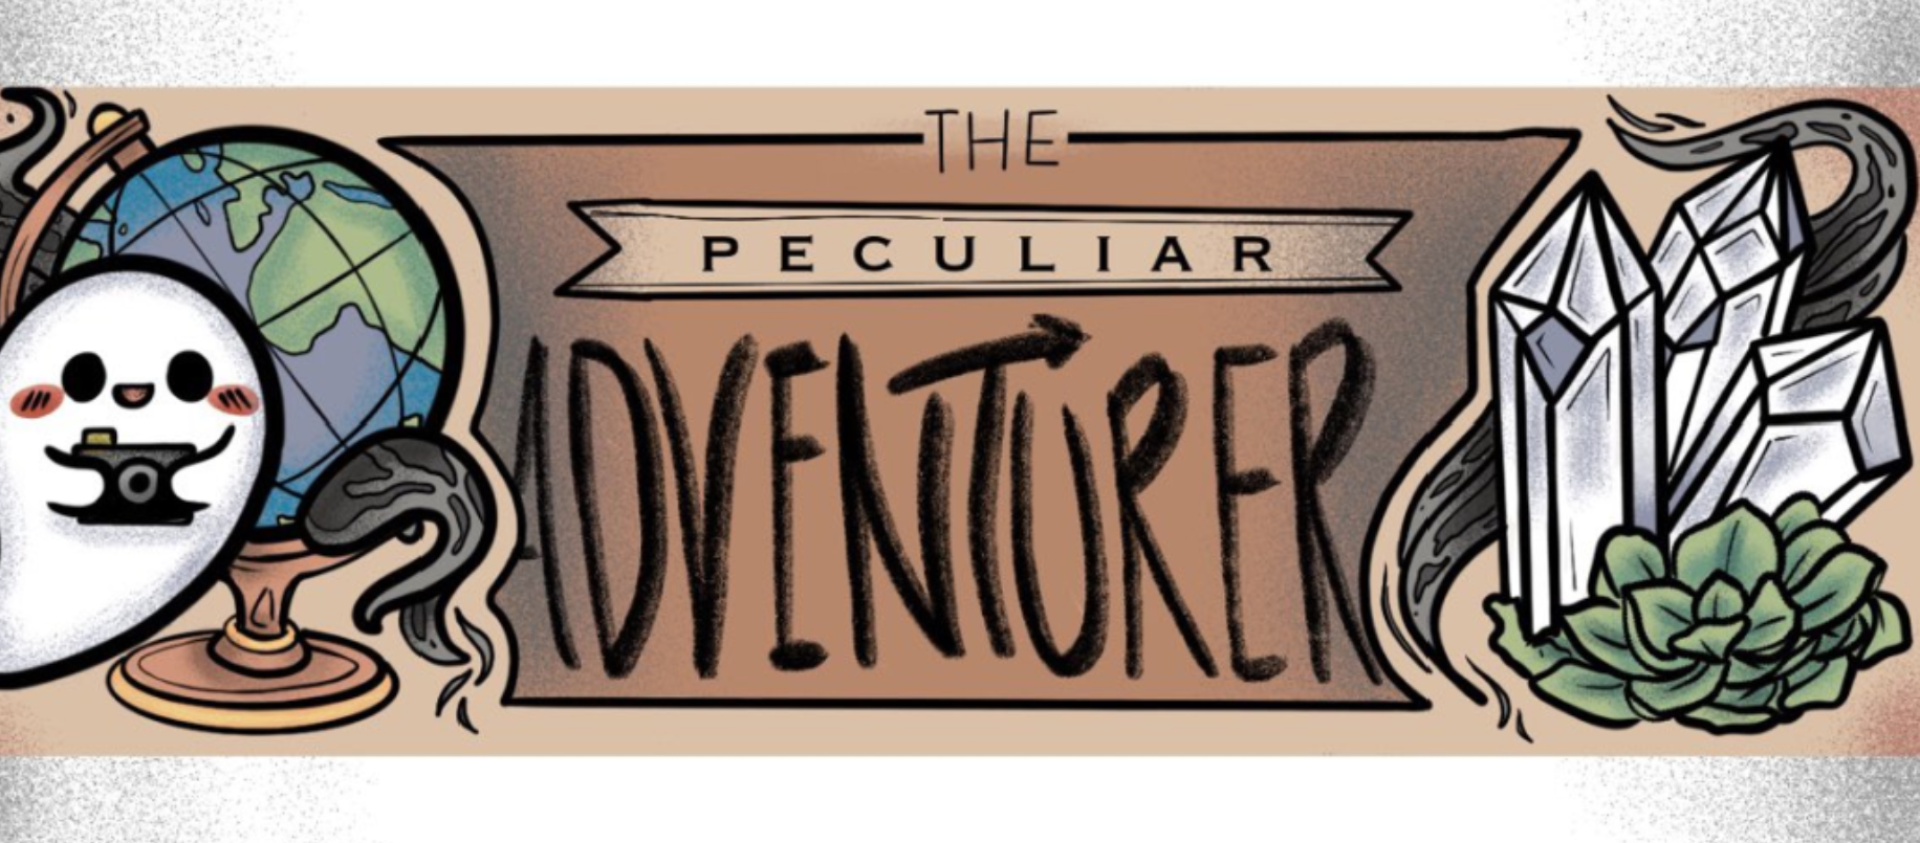 Peculiar Adventure written with a ghost doodle on the left and crystal doodles on the right